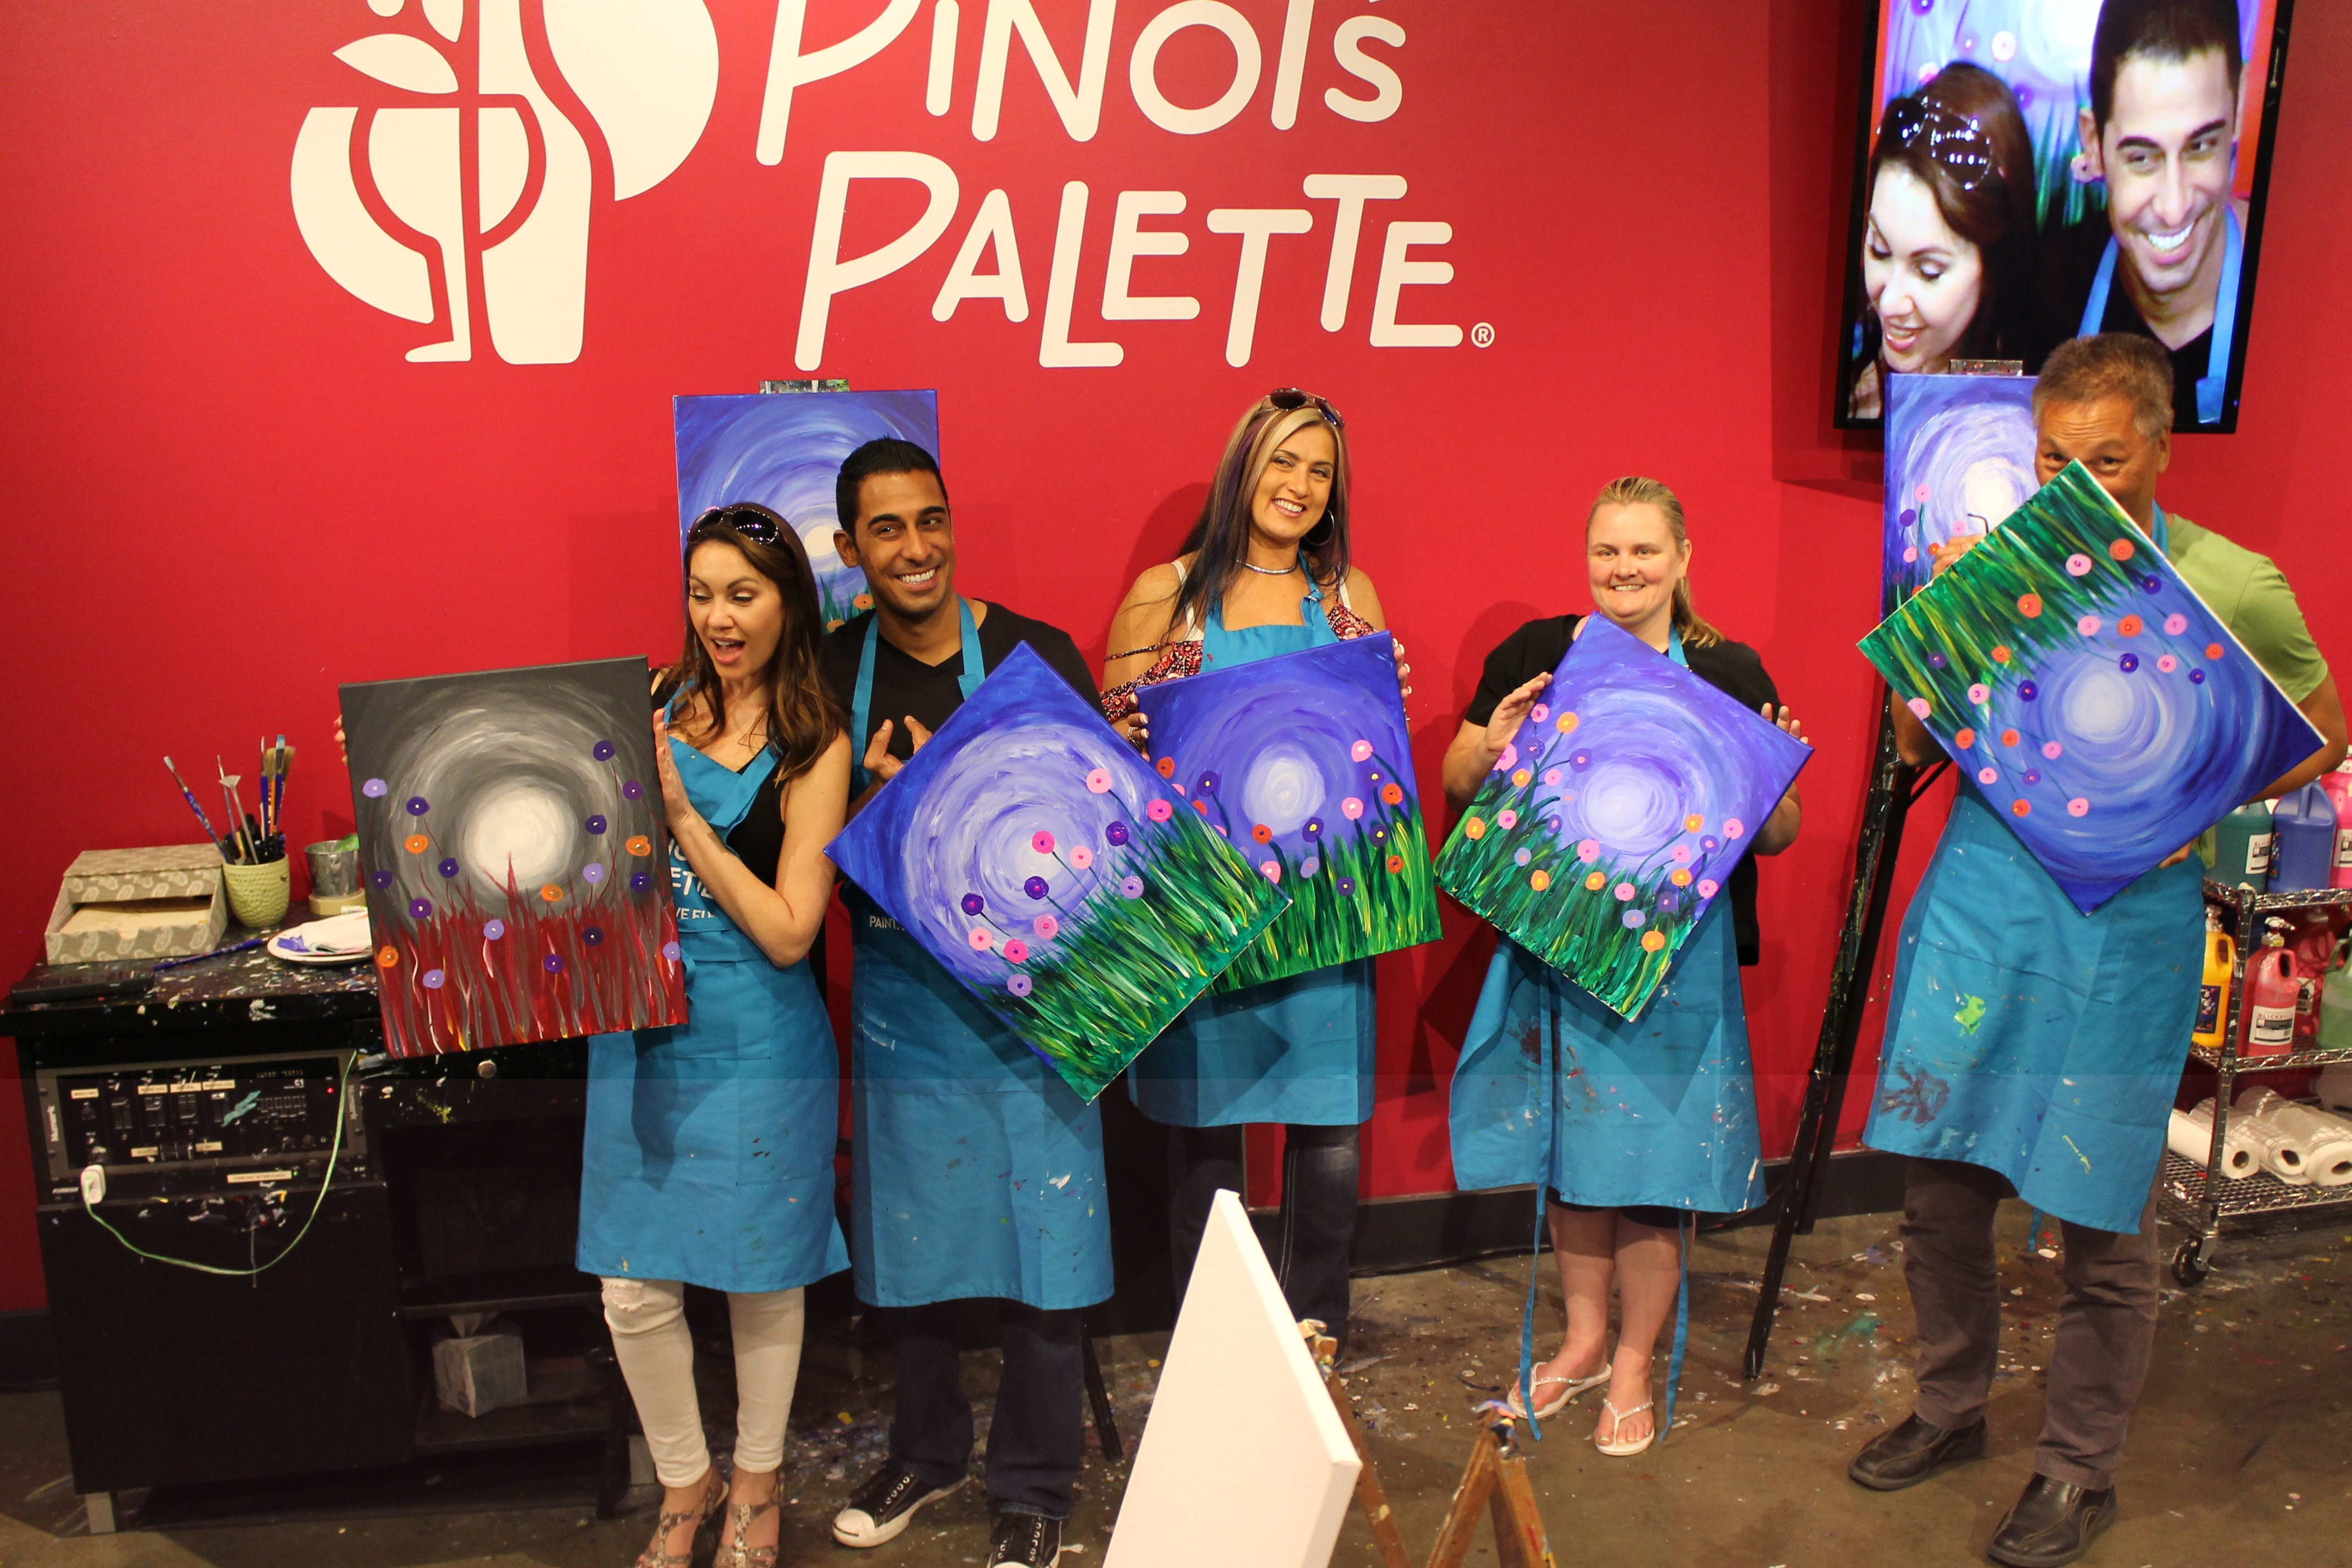 Plan the Perfect Night of Wine & Painting at Pinots Palette